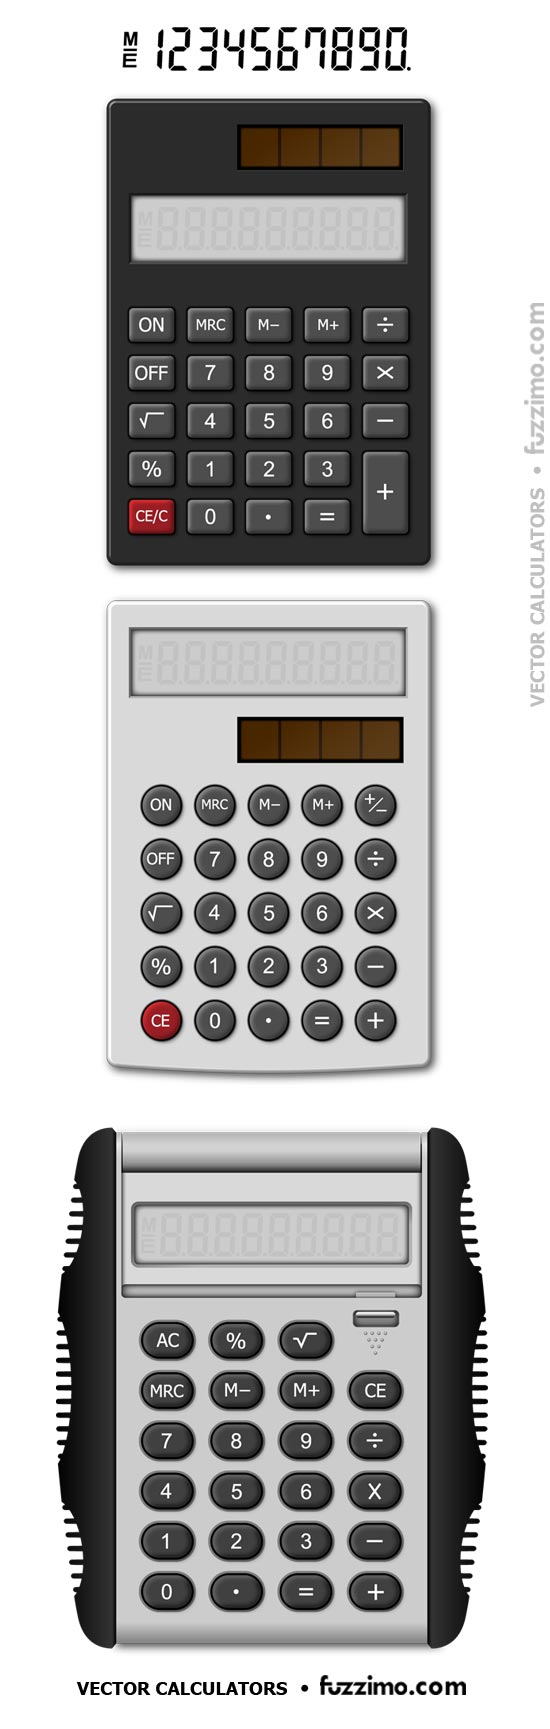 fzm-Vector-Calculators-02